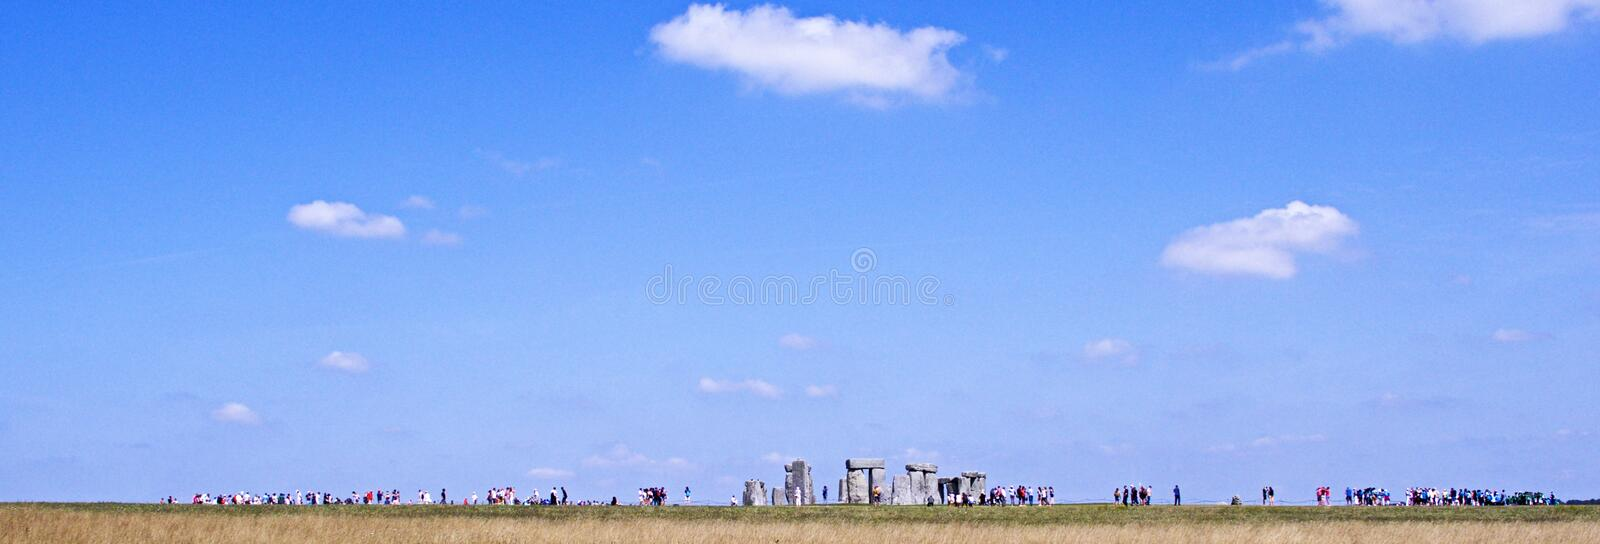 Stonehenge on a summers day with distant unrecognisable people people viewing the stones. royalty free stock image